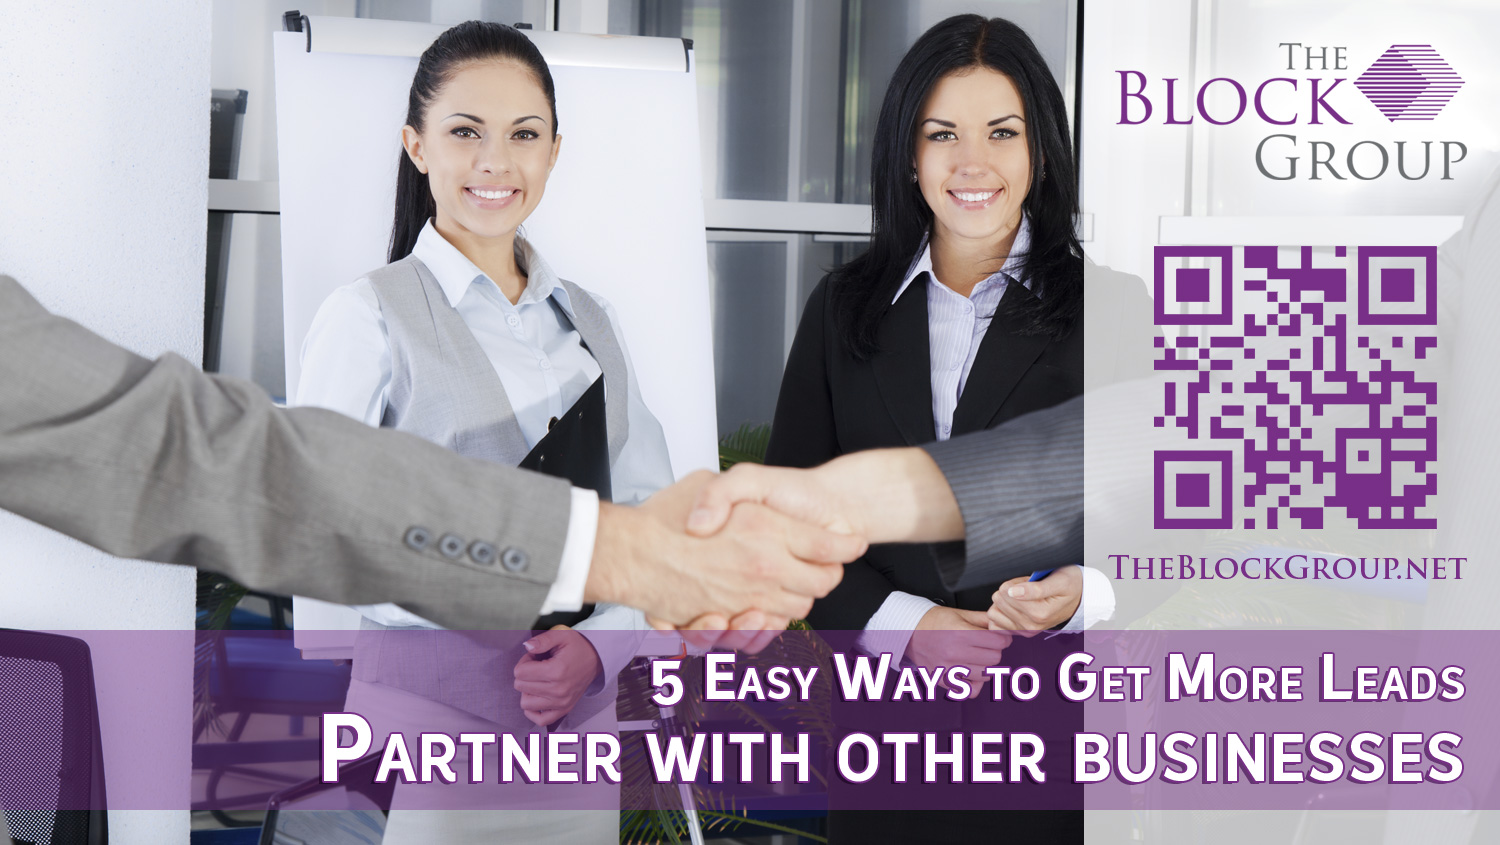 007-Partner-with-other-businesses